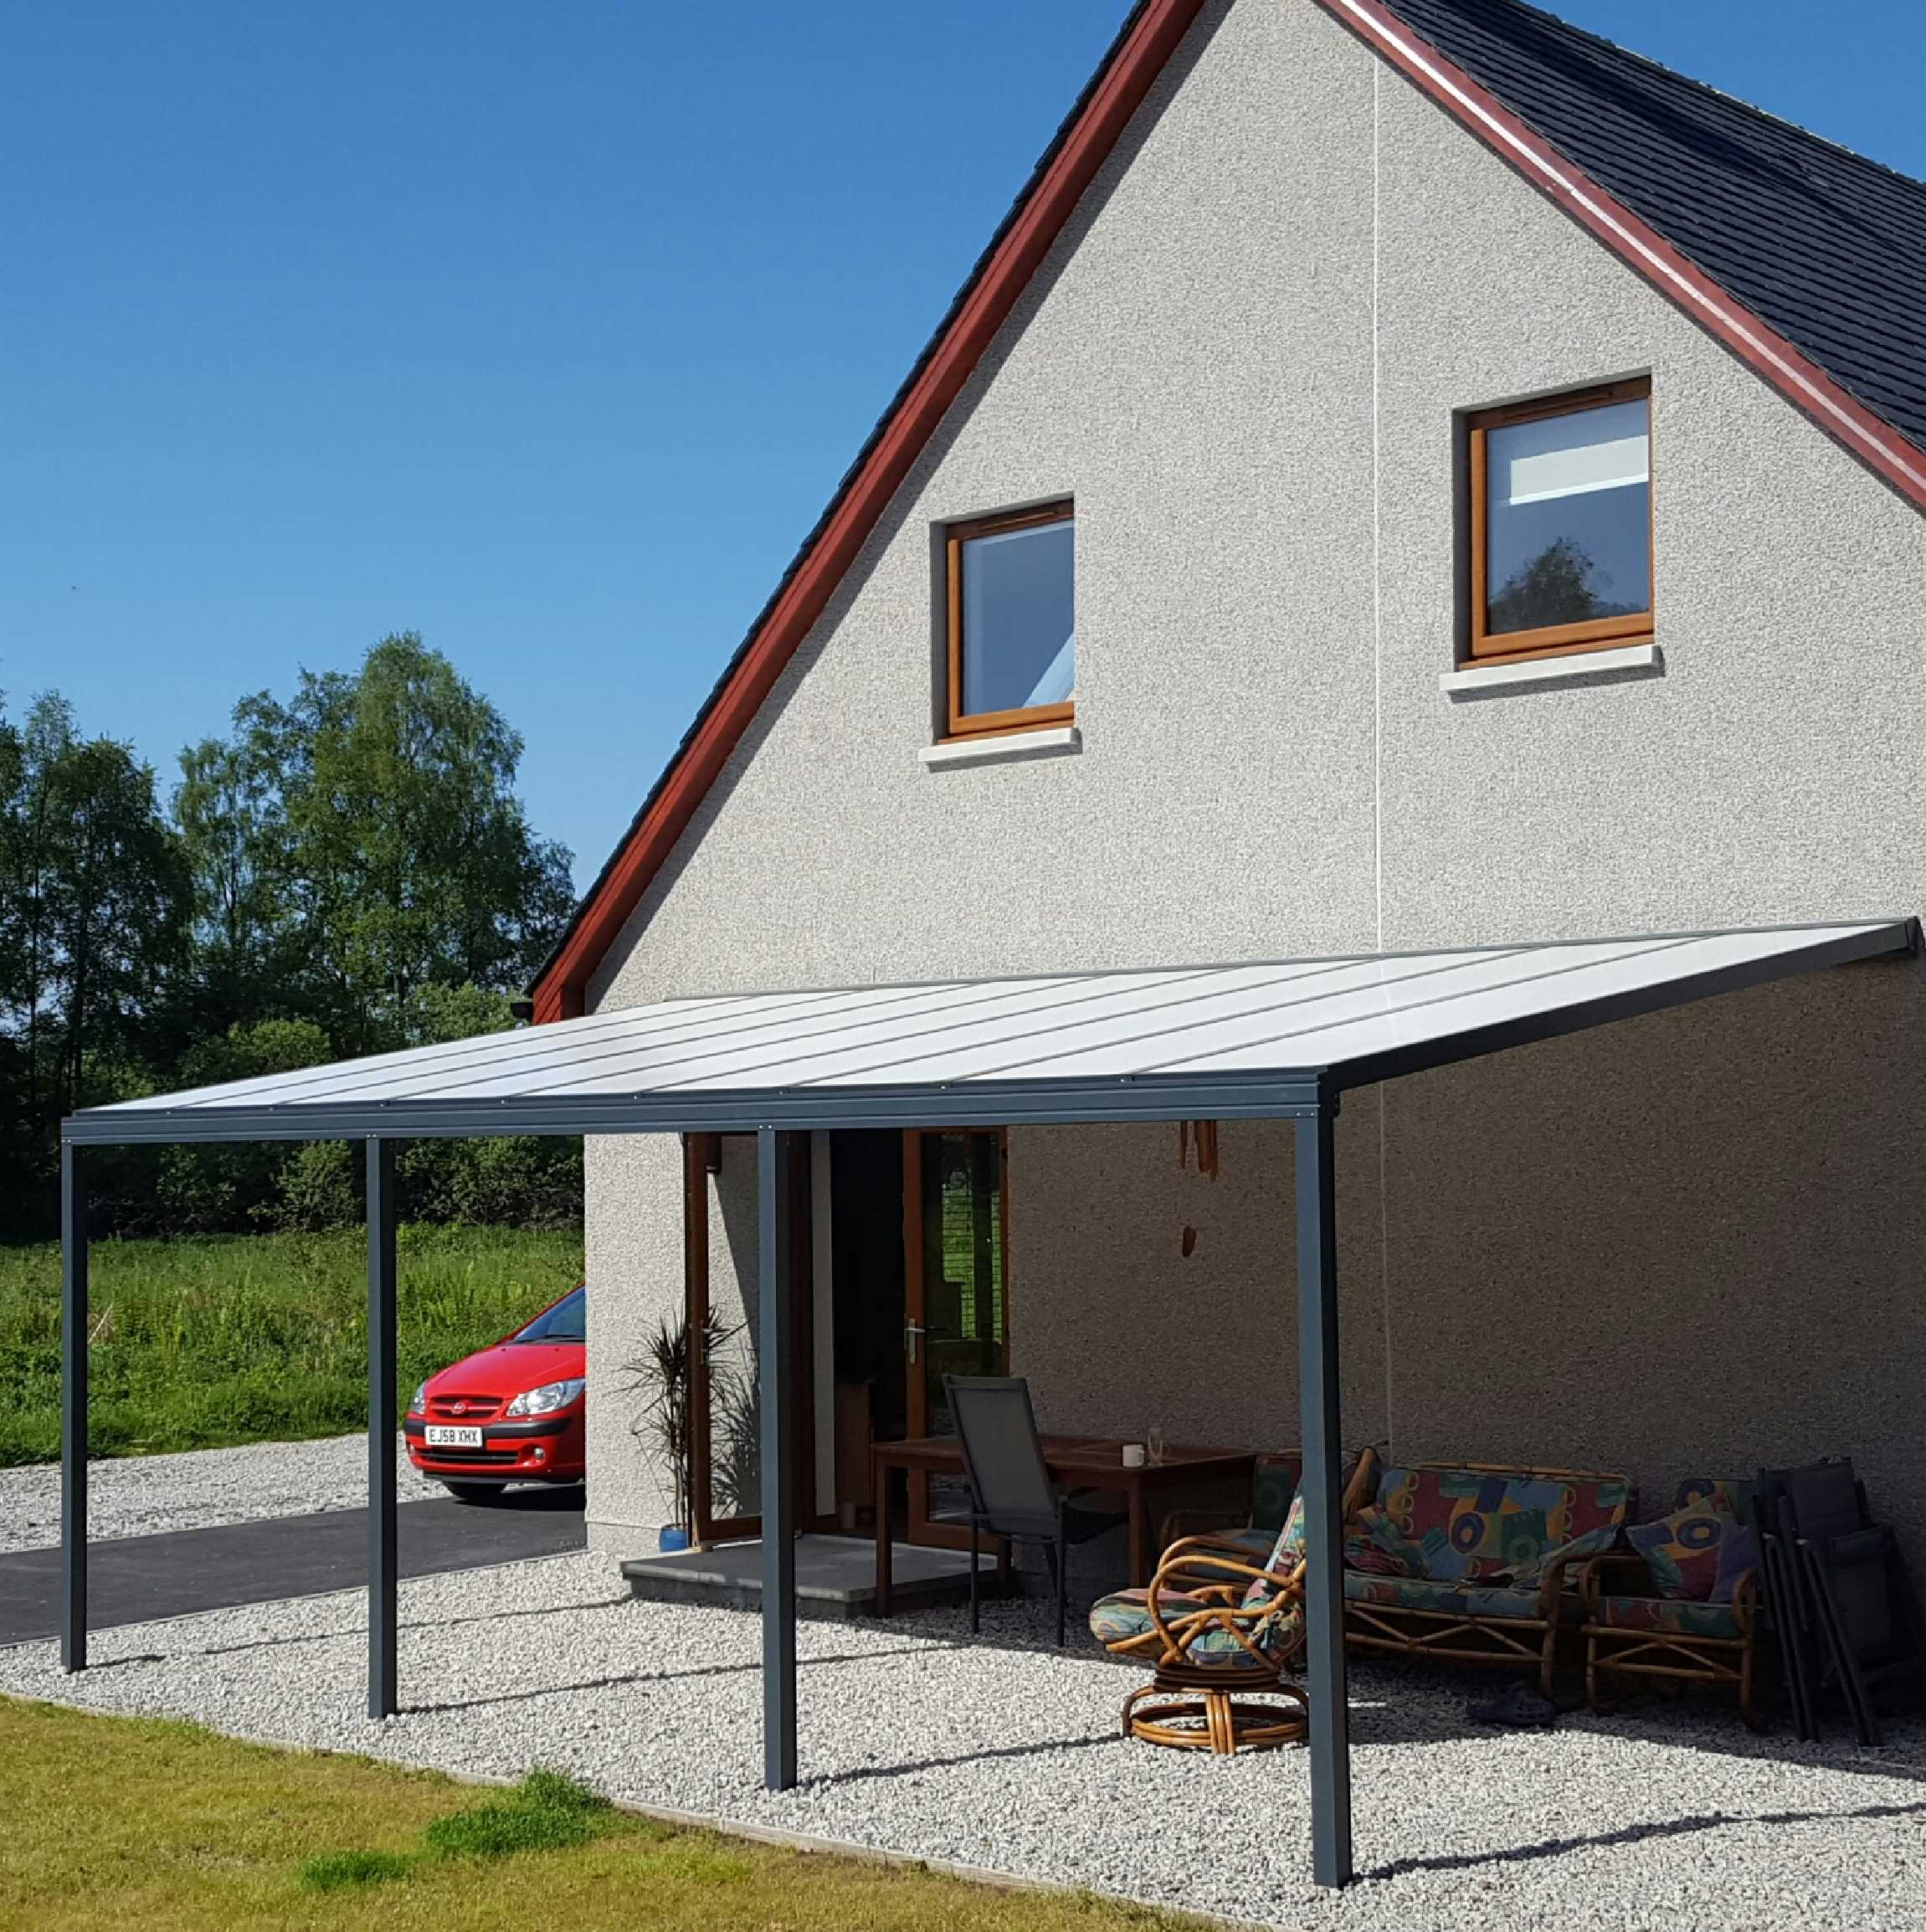 Great selection of Omega Smart Lean-To Canopy, Anthracite Grey, 16mm Polycarbonate Glazing - 3.5m (W) x 4.0m (P), (3) Supporting Posts